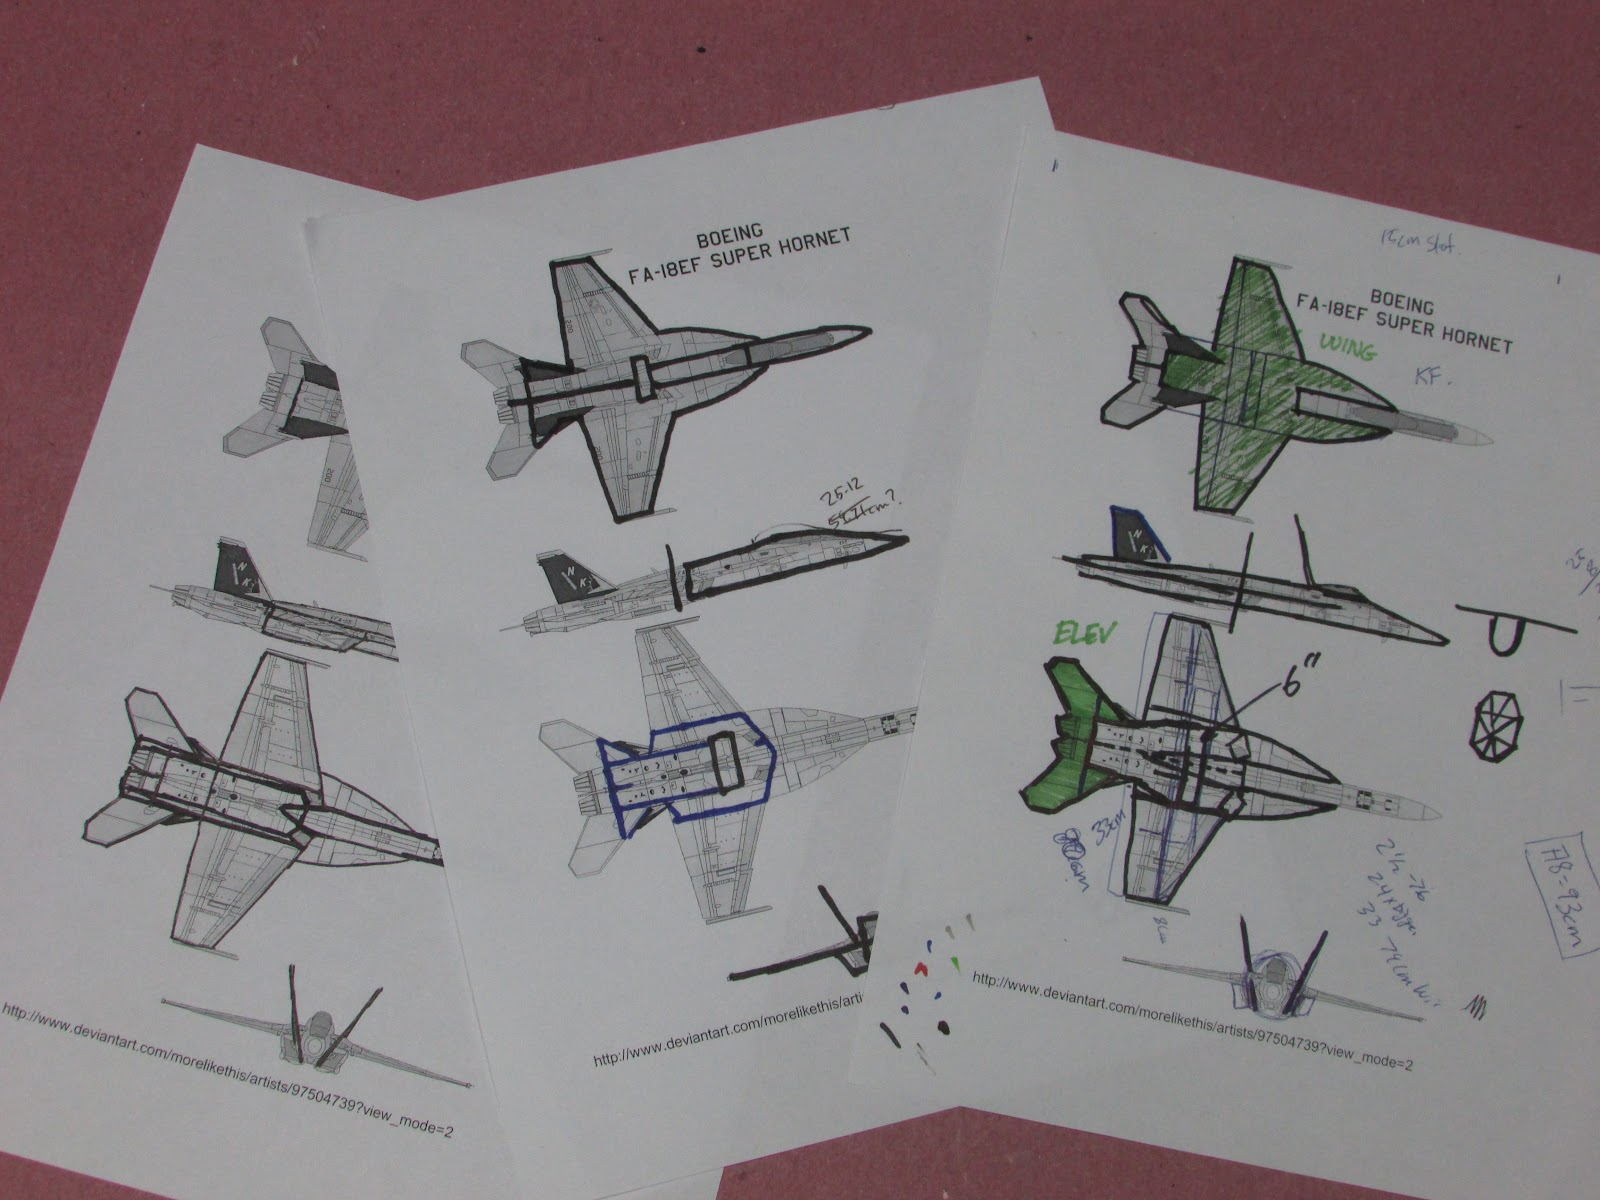 Build F 18 Super Hornet In Ft Style Flite Test F18 Jet Engine Diagram Design Process